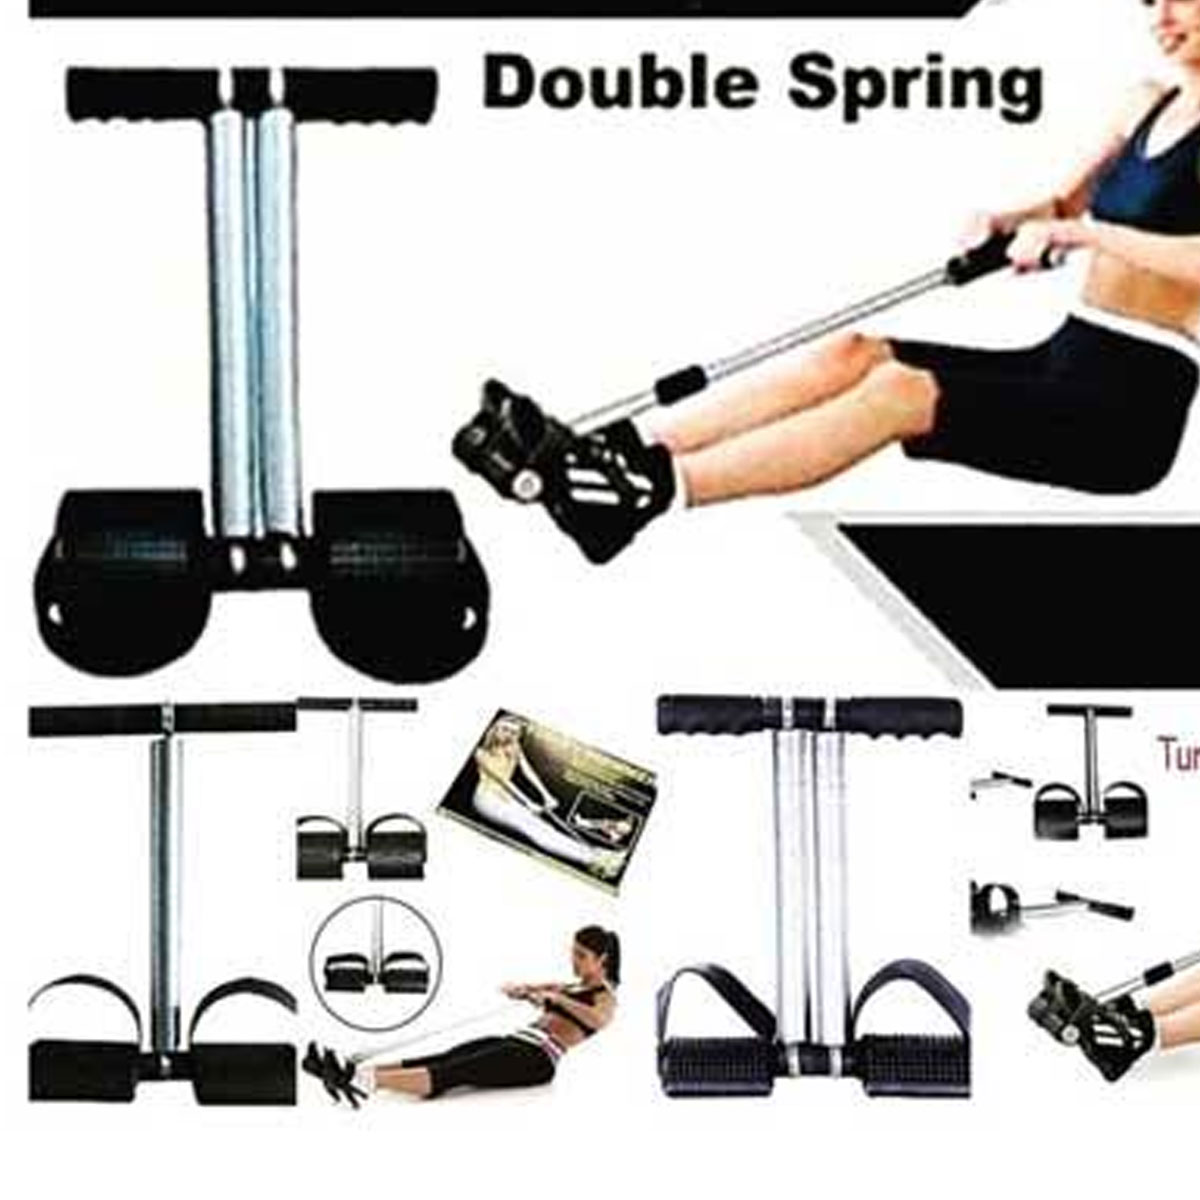 TUMMY TRIMMER Double SPRING WEIGHT LOSS EXERCISE BODY FITNESS HOME GYM FOR WOMEN / MEN DOUBLE SPRING HIGH QUALITY